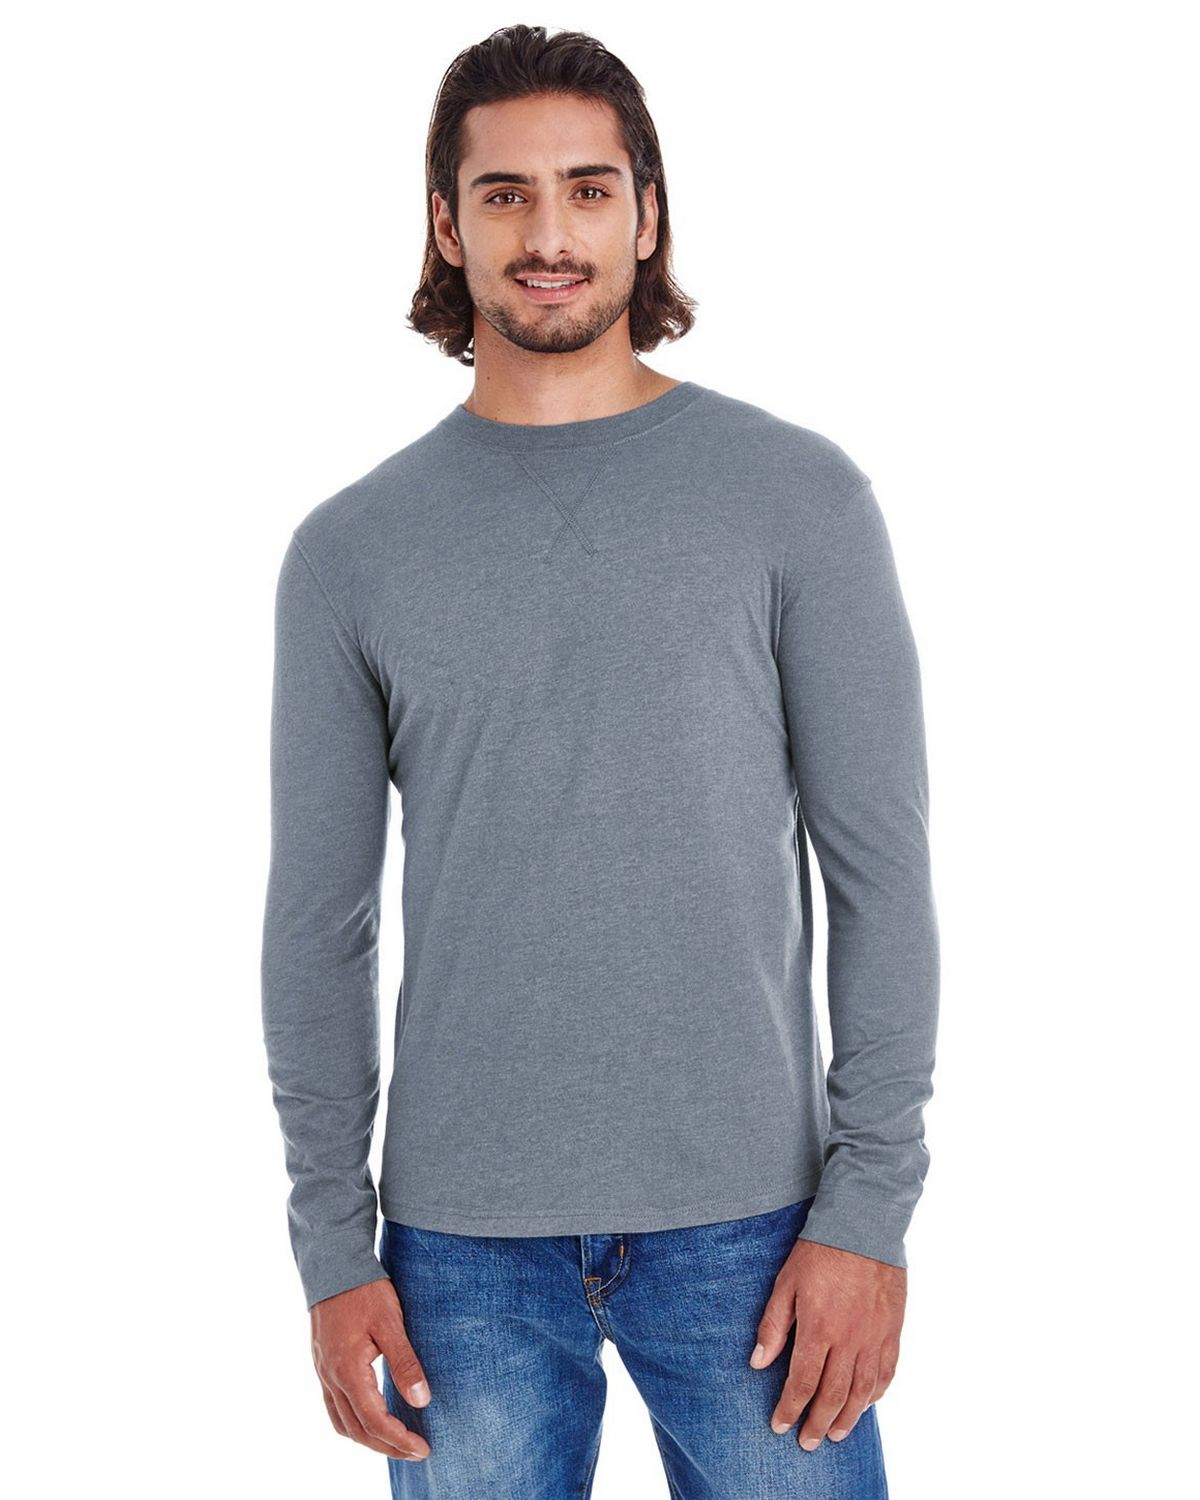 Econscious EC1588 Mens Long Sleeve Jersey - Water - M EC1588